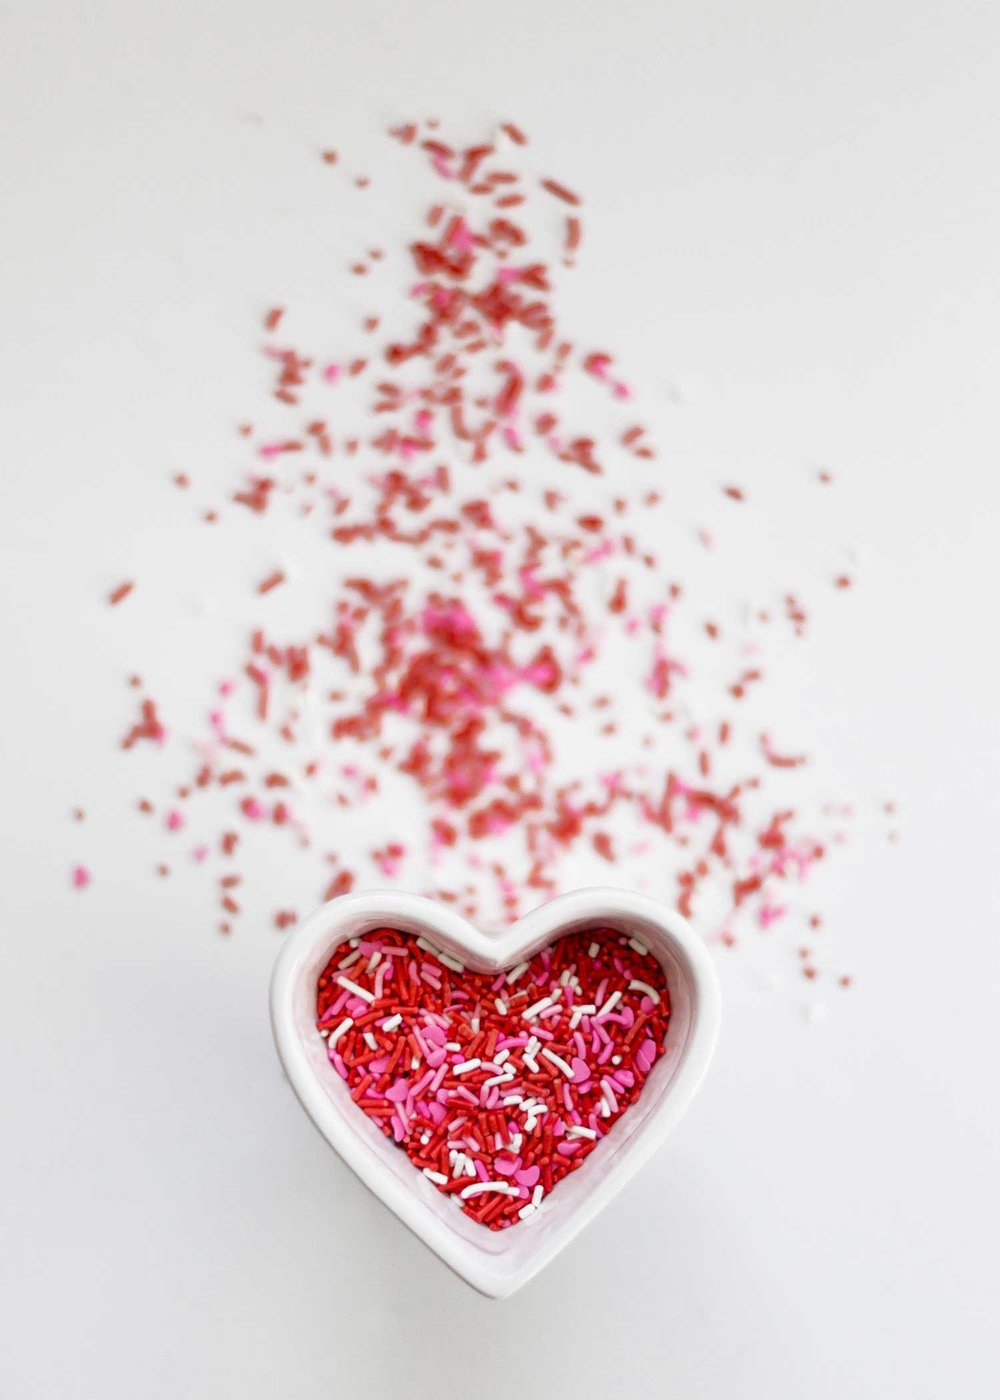 Valentine's Day is one of the most popular days to get engaged. But why?